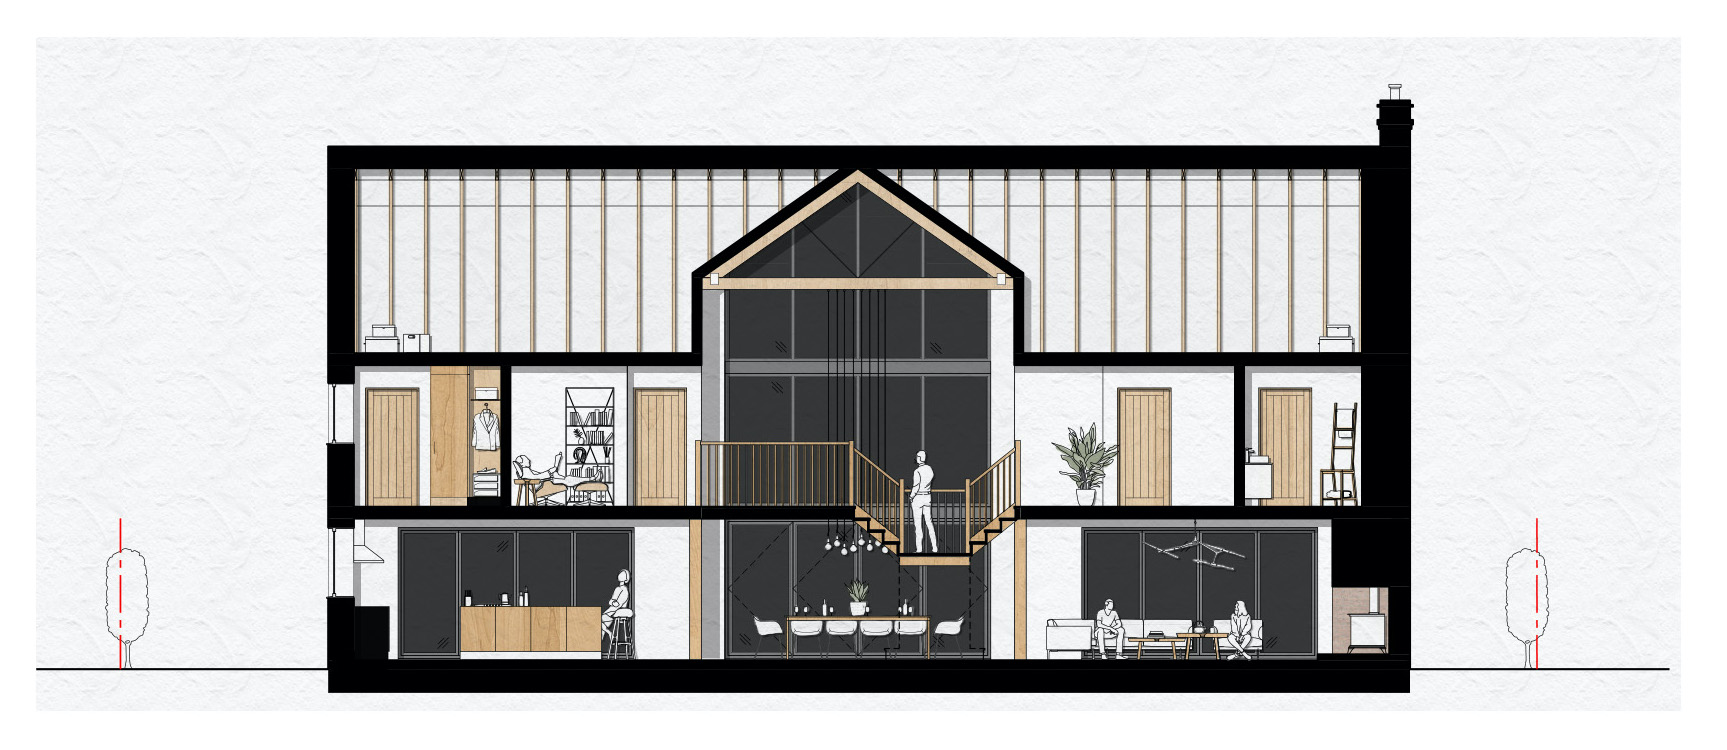 The Granary Concept Section